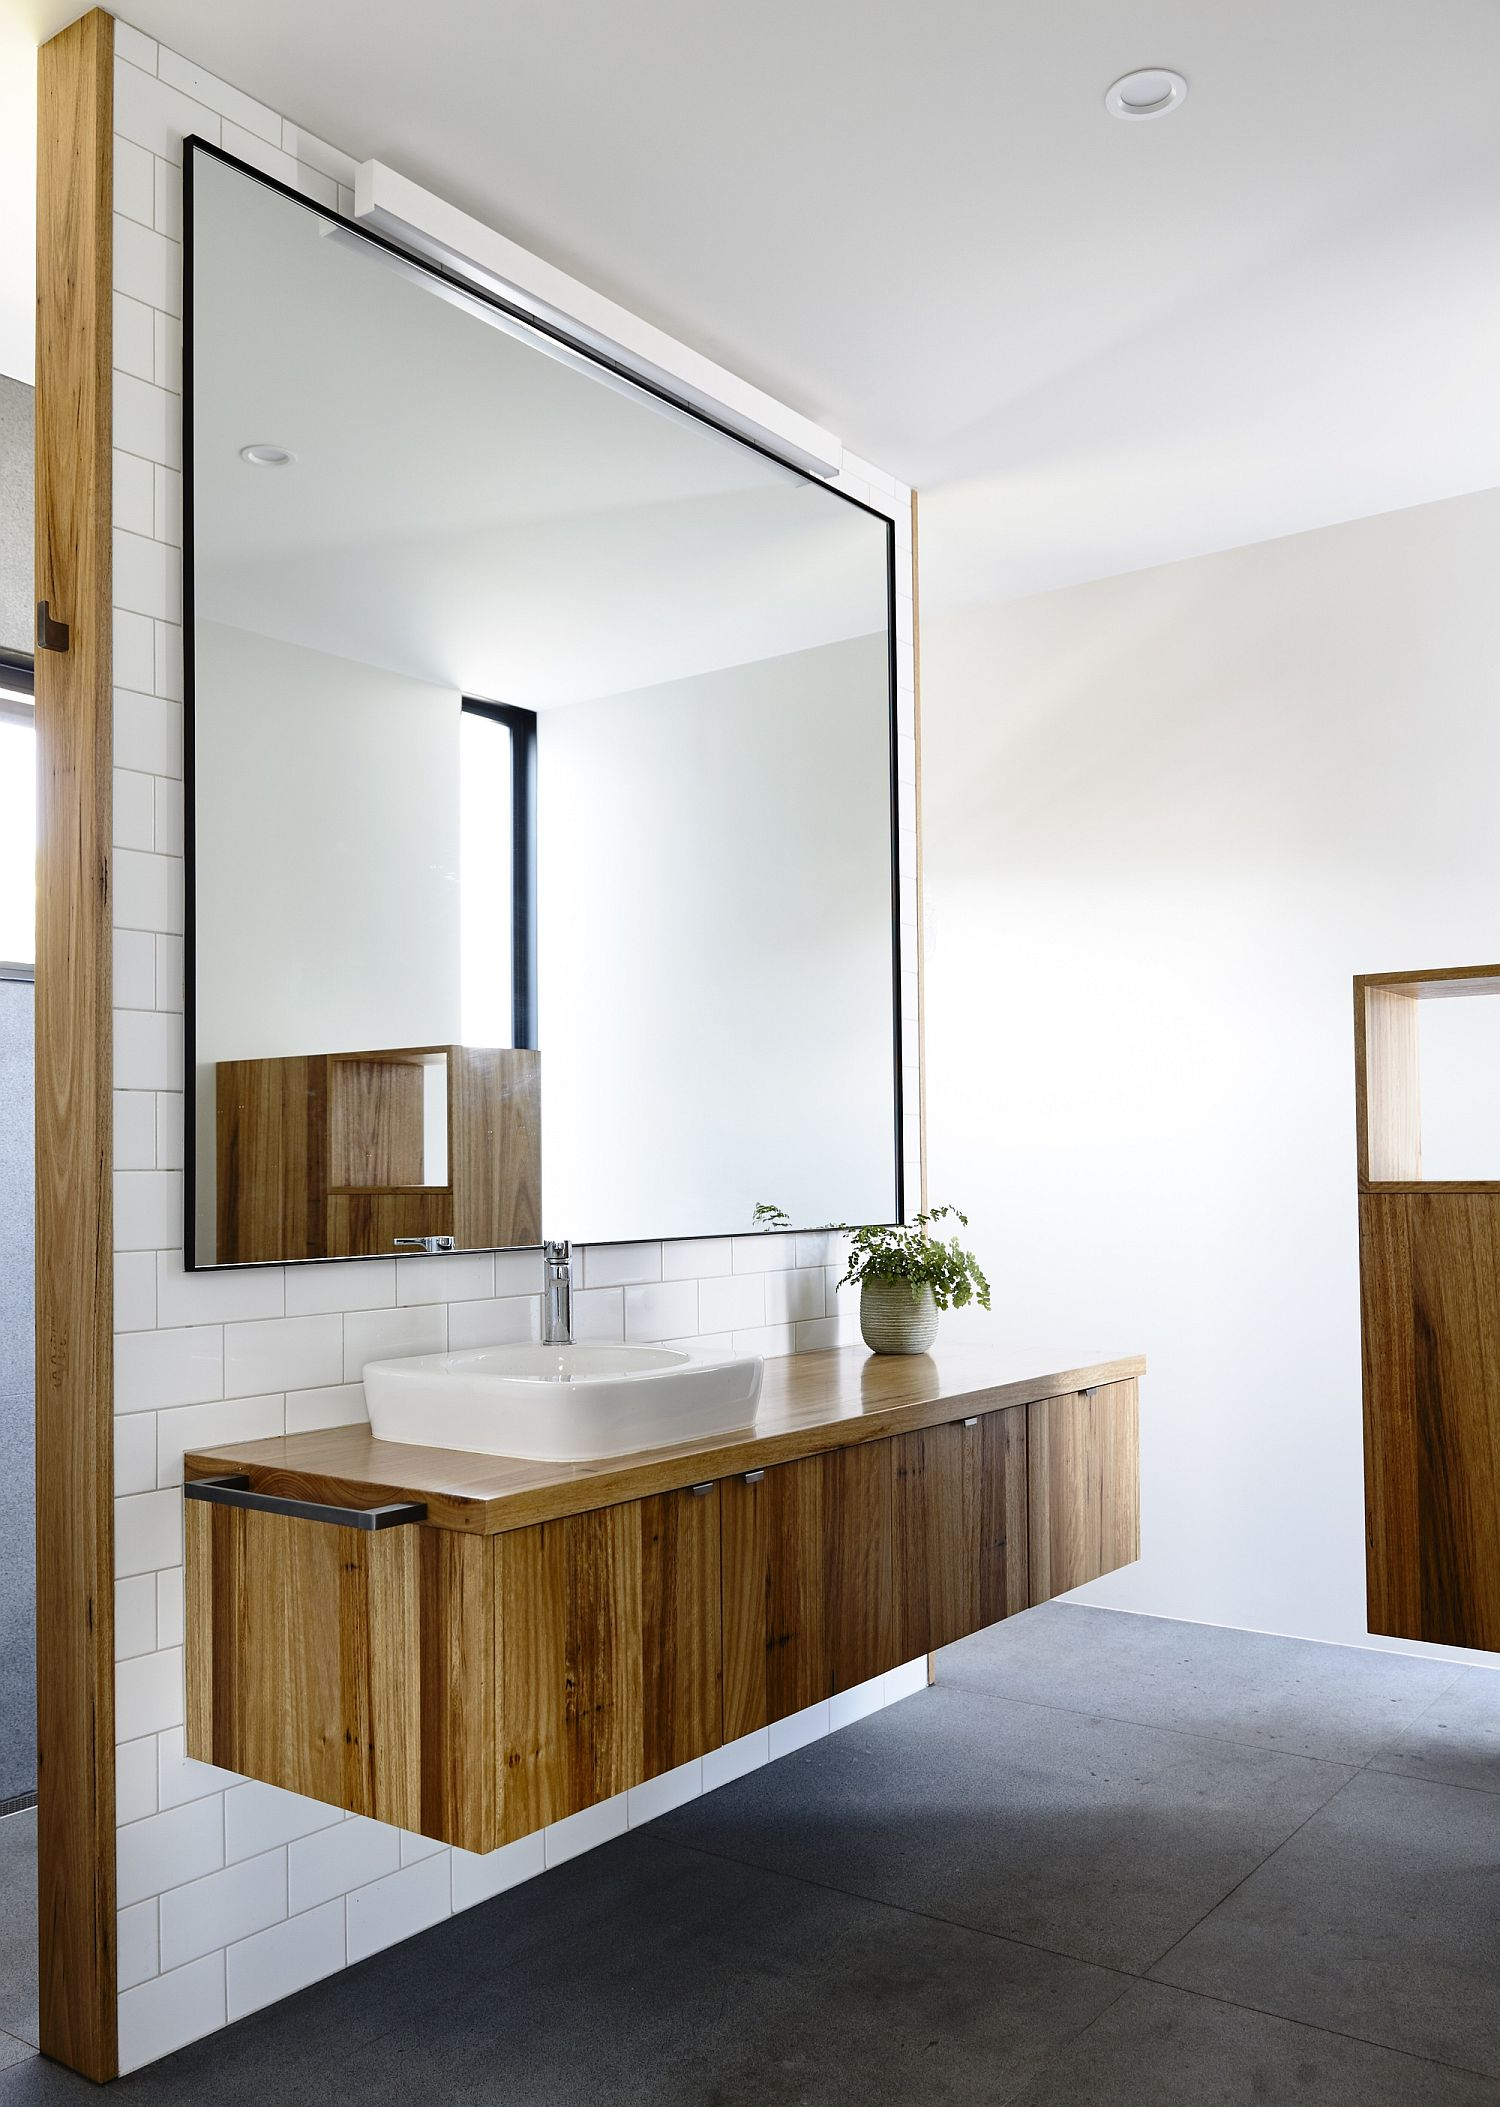 Fabulous floating vanity in wood with giant mirror above